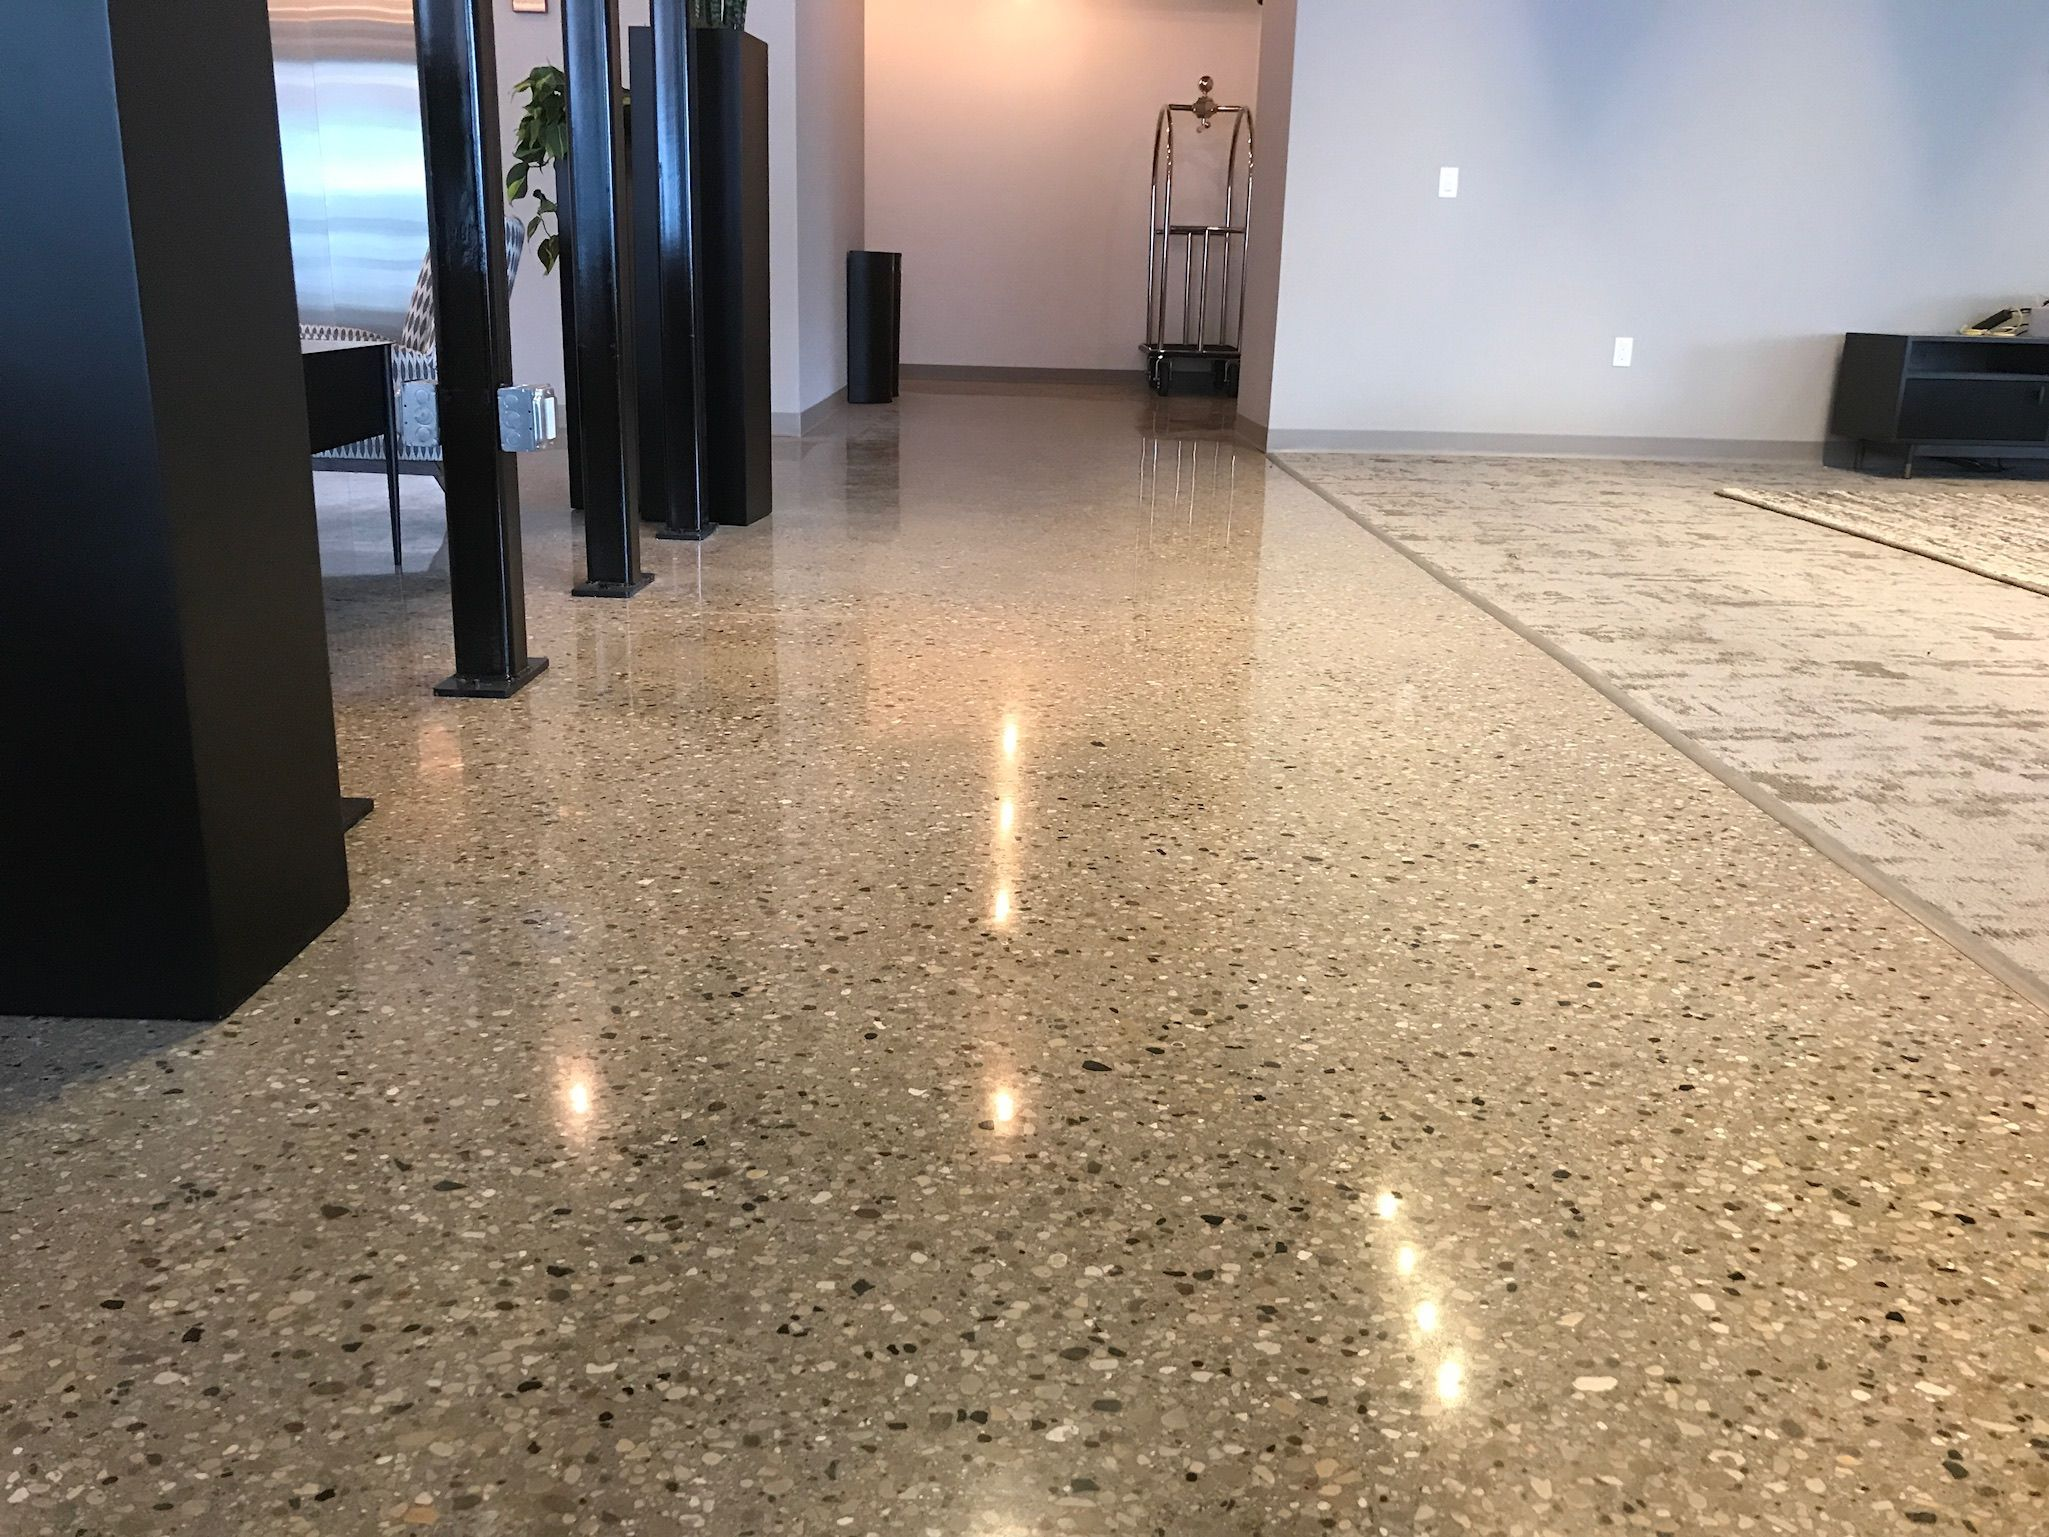 Image Result For Residential Polished Concrete Floors Wood Walls House Concrete Floor Polished Concrete Concrete Floors Wood Wall